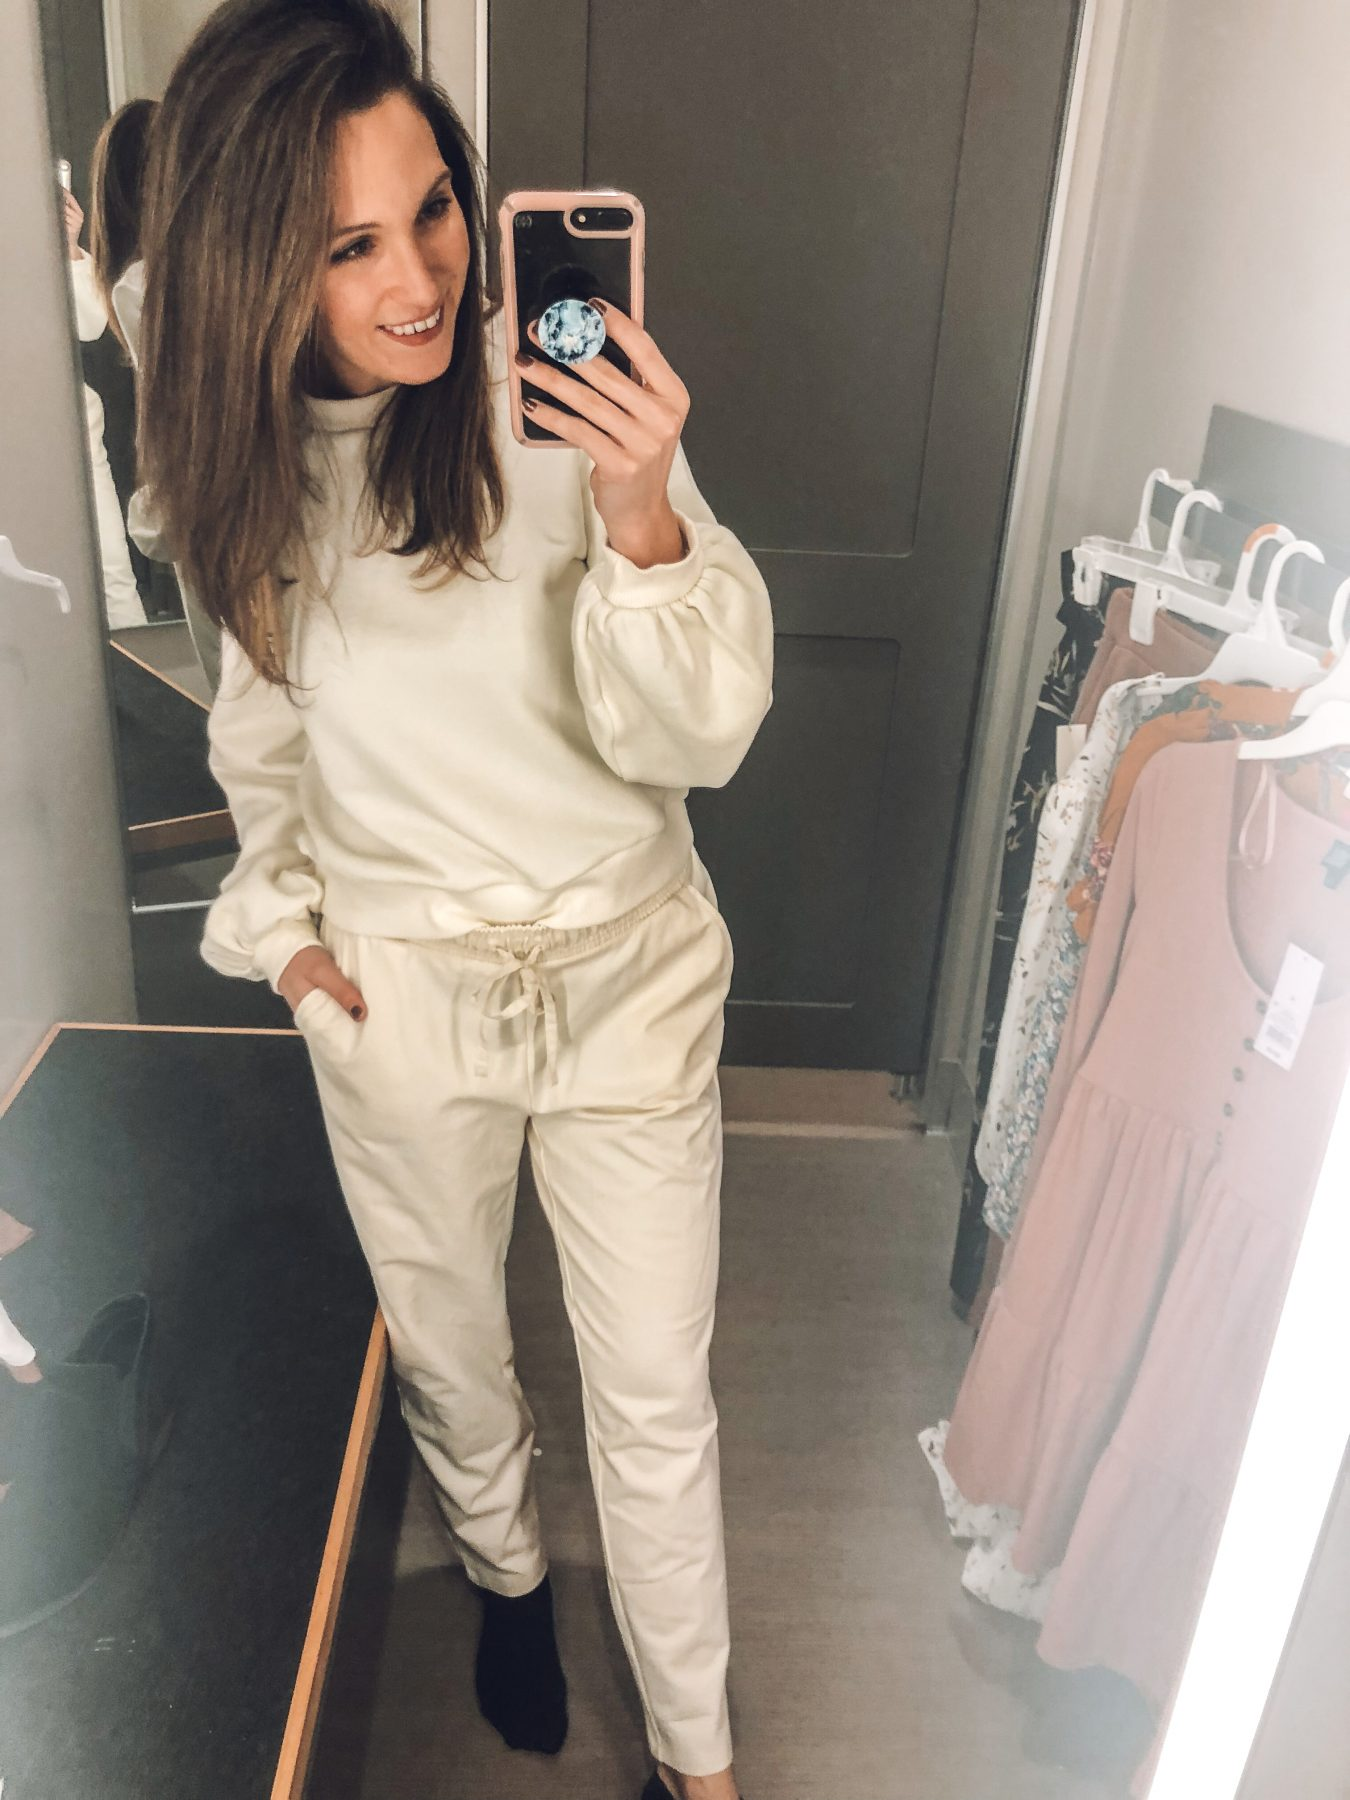 Cozy Winter White Outfit Target Try-On